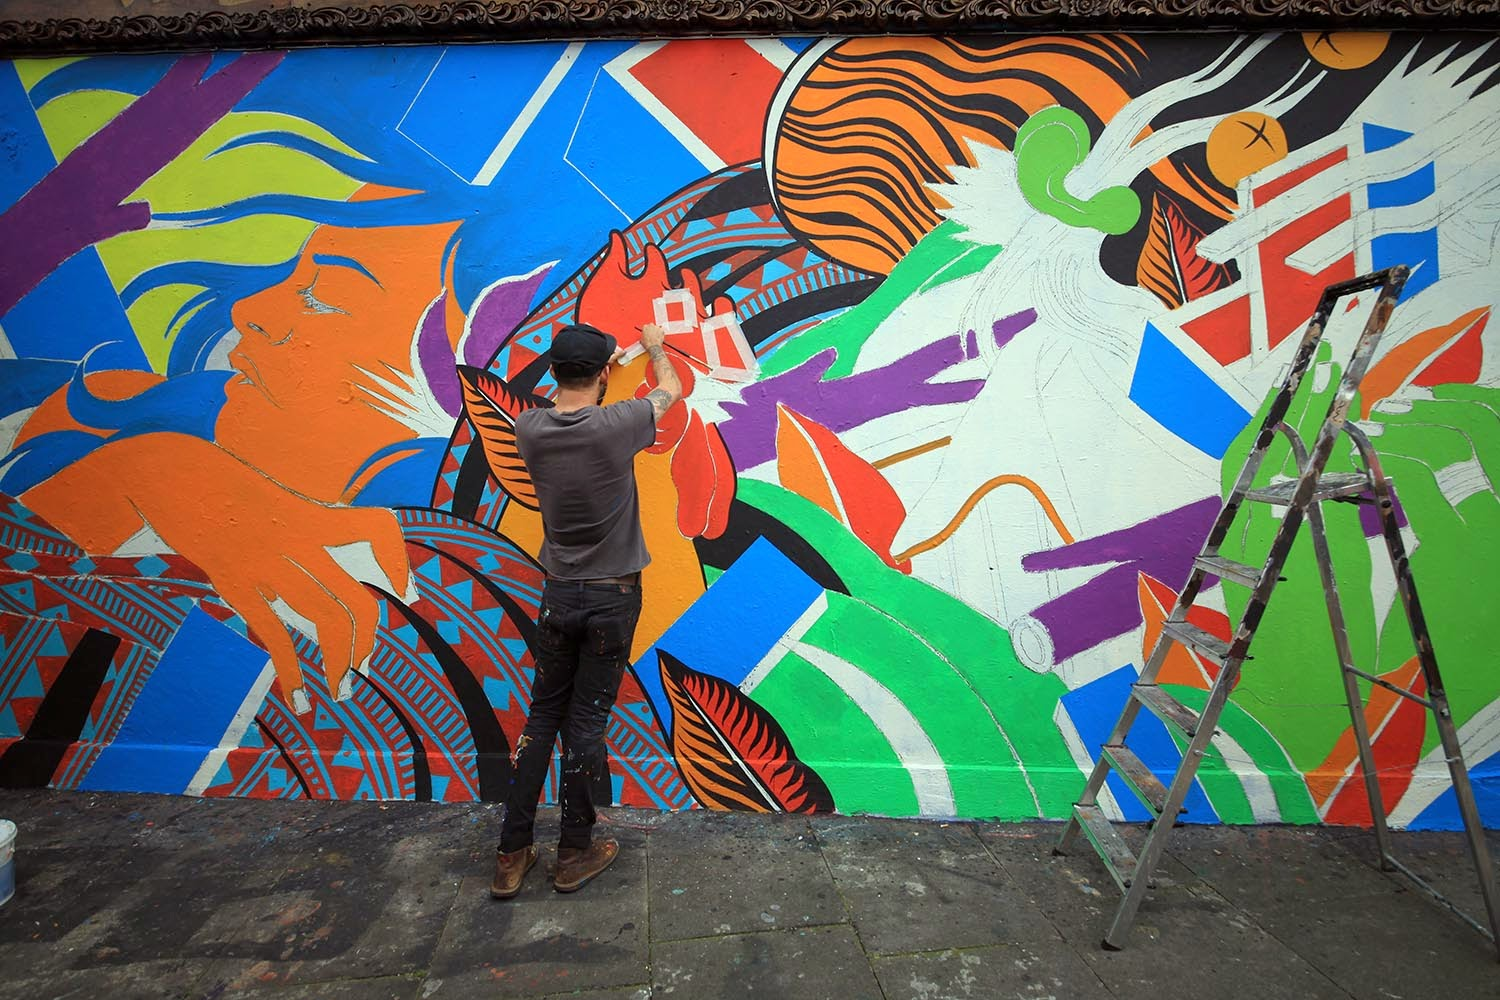 After a massive mural in San Juan, Puerto Rico for Santurce Es Ley 5, Bicicleta Sem Freio have now landed in the United Kingdom where they are currently working on this fresh new piece.